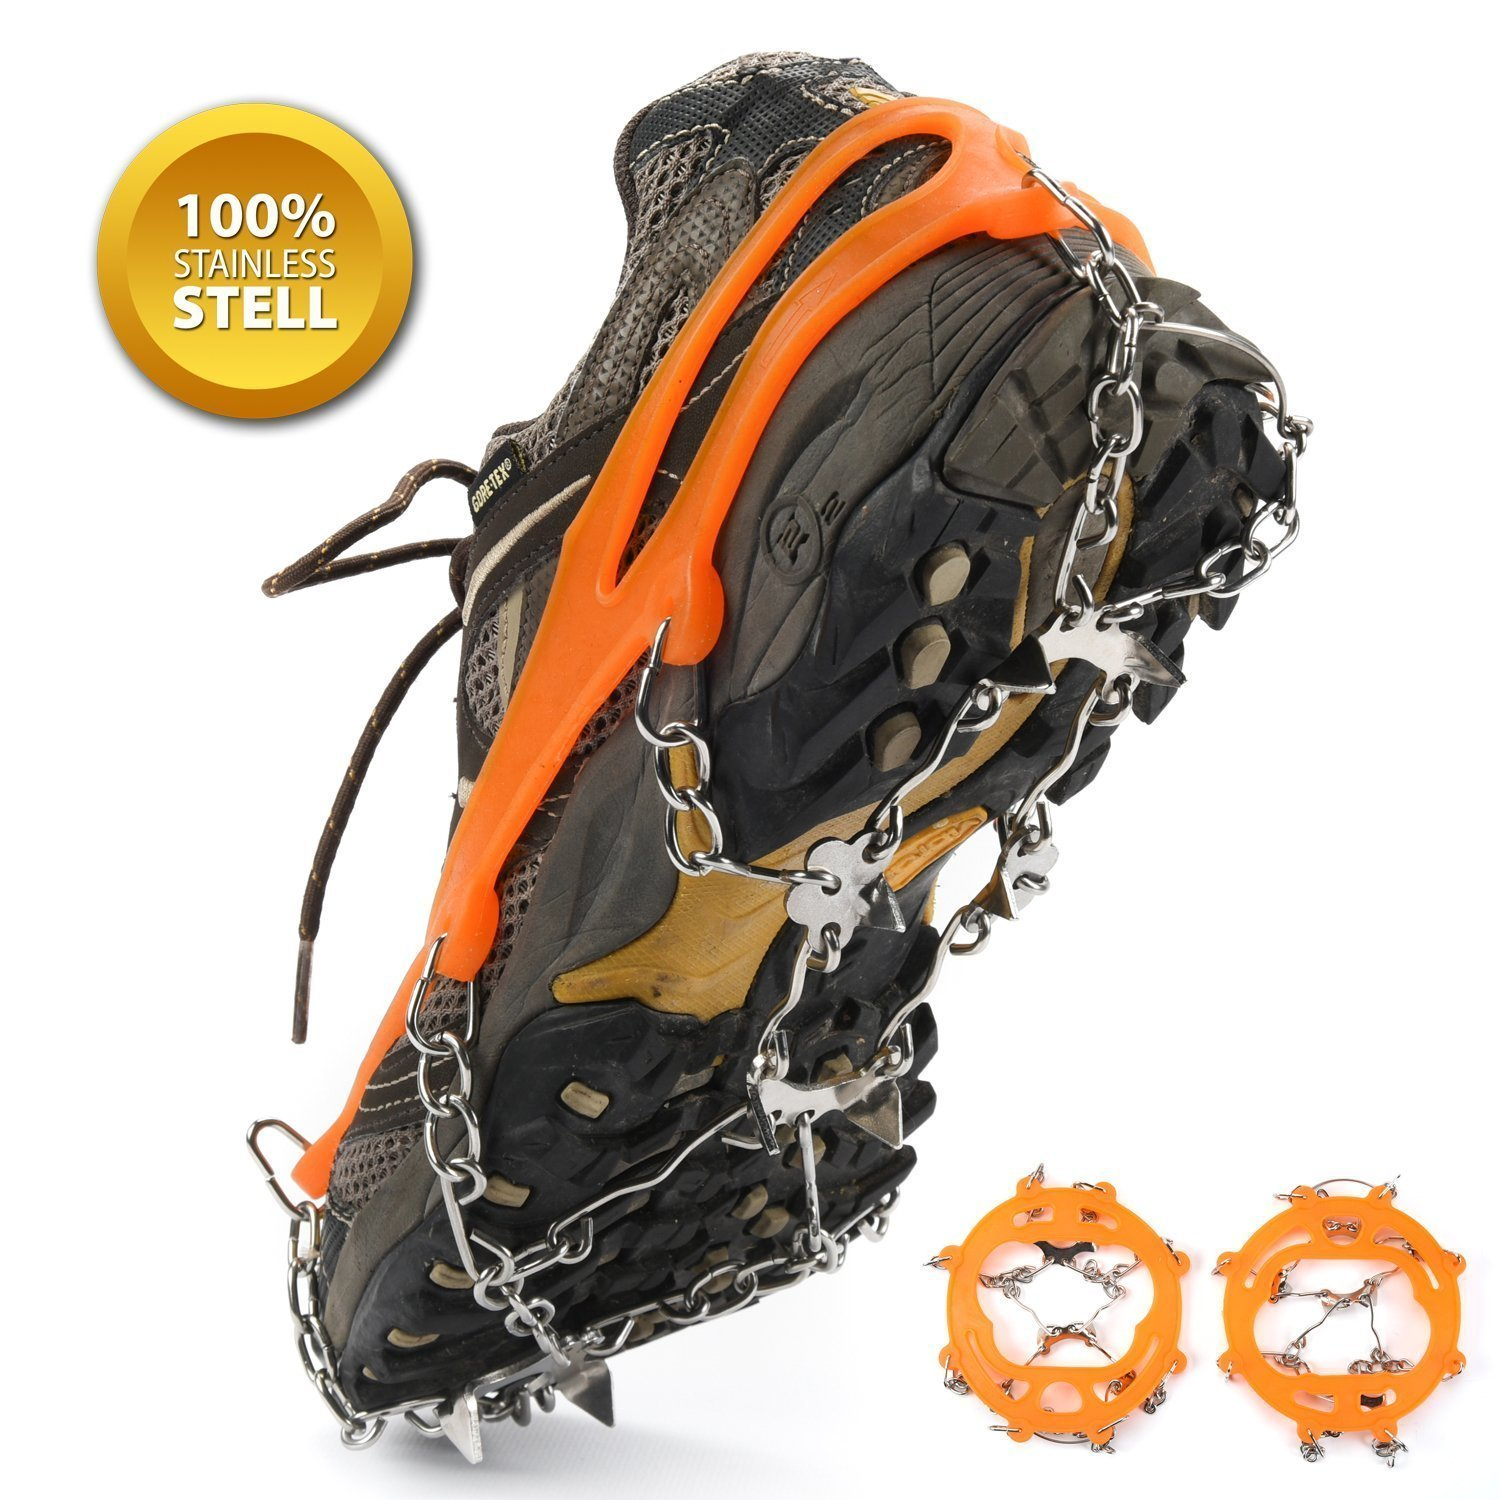 SehrGo Unisexe multifonction antidérapant Ice Semelle de chaussures à crampons Grips Traction Crampons Chaîne Spike 1 paire